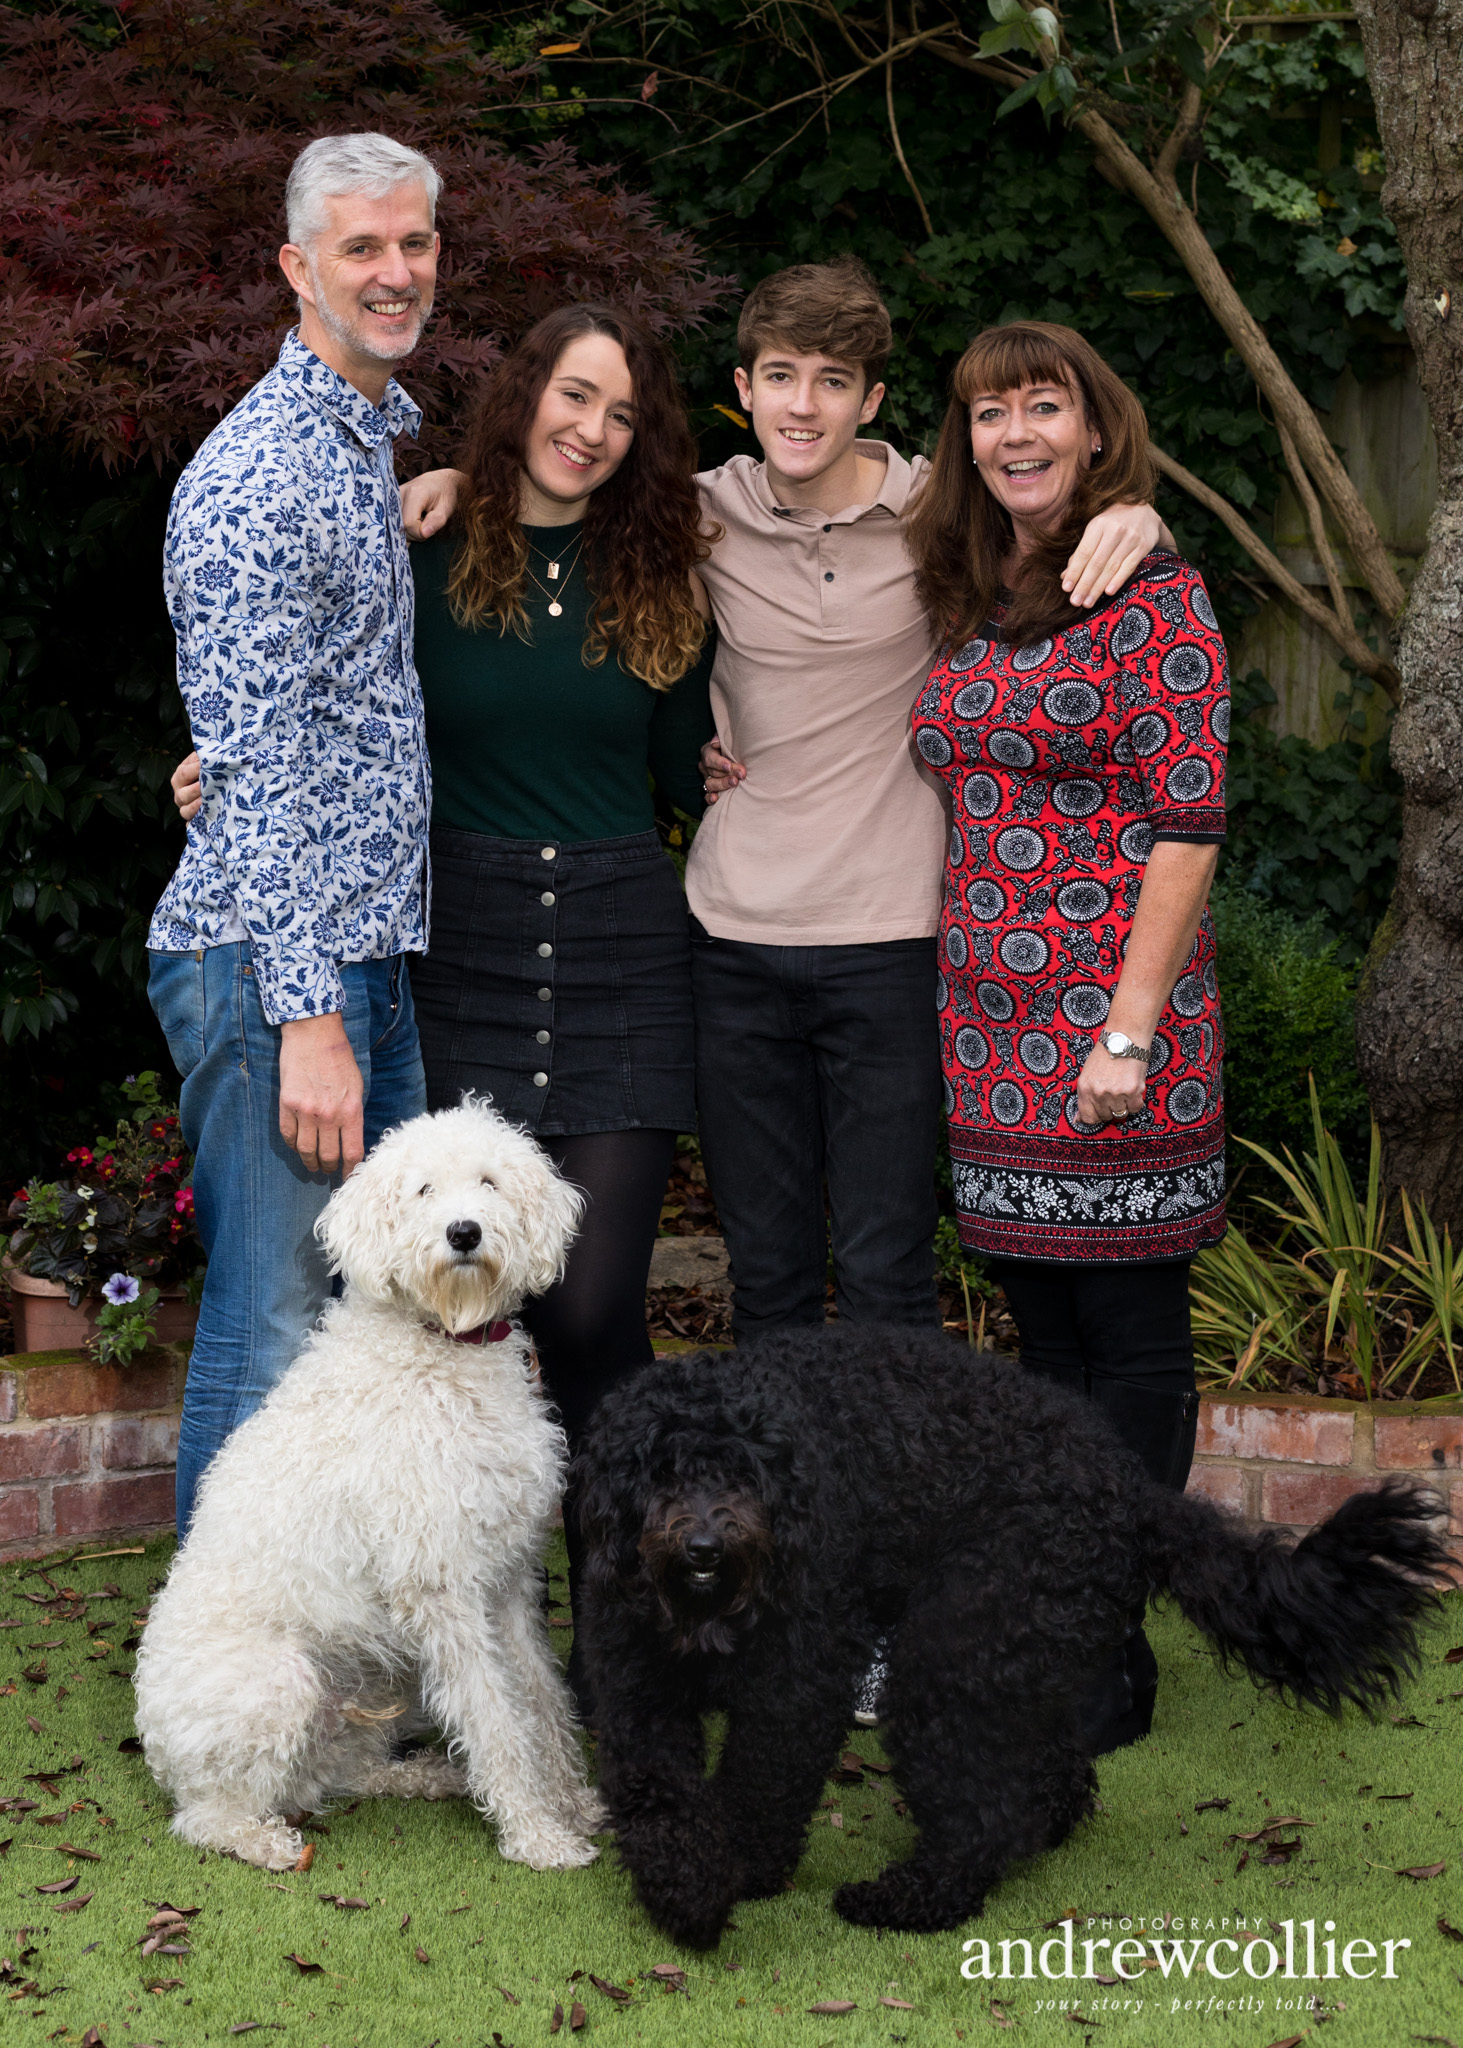 a colour portrait photograph of a mother, father, son and daughter and two labradoodle dogs from a winter family portrait session in Didsbury, South Manchester